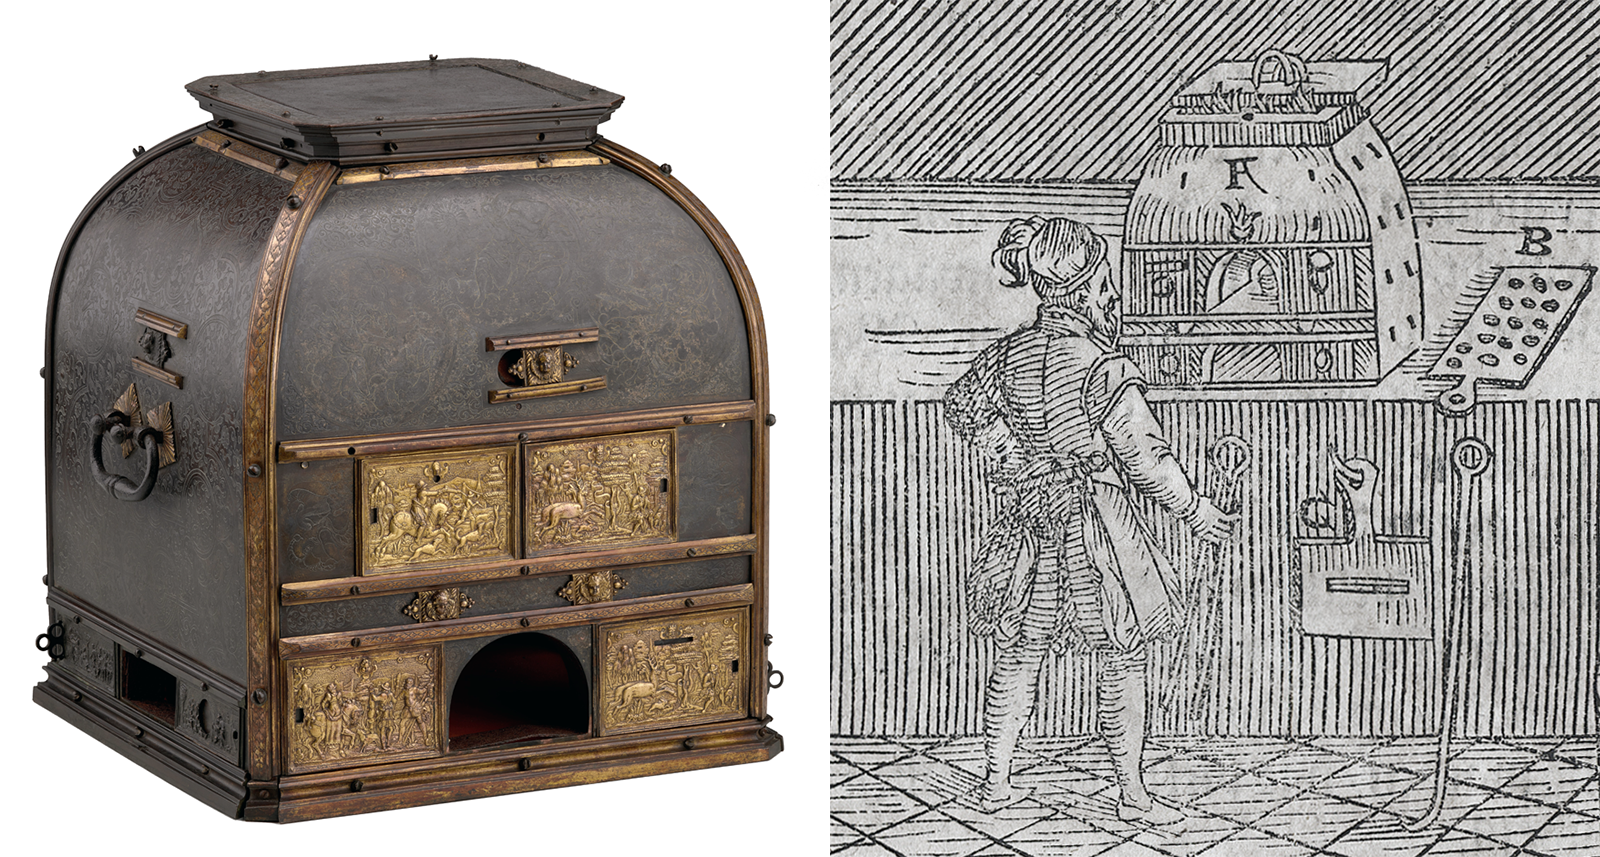 Ornate cabinet-like tabletop furnace and an engraving